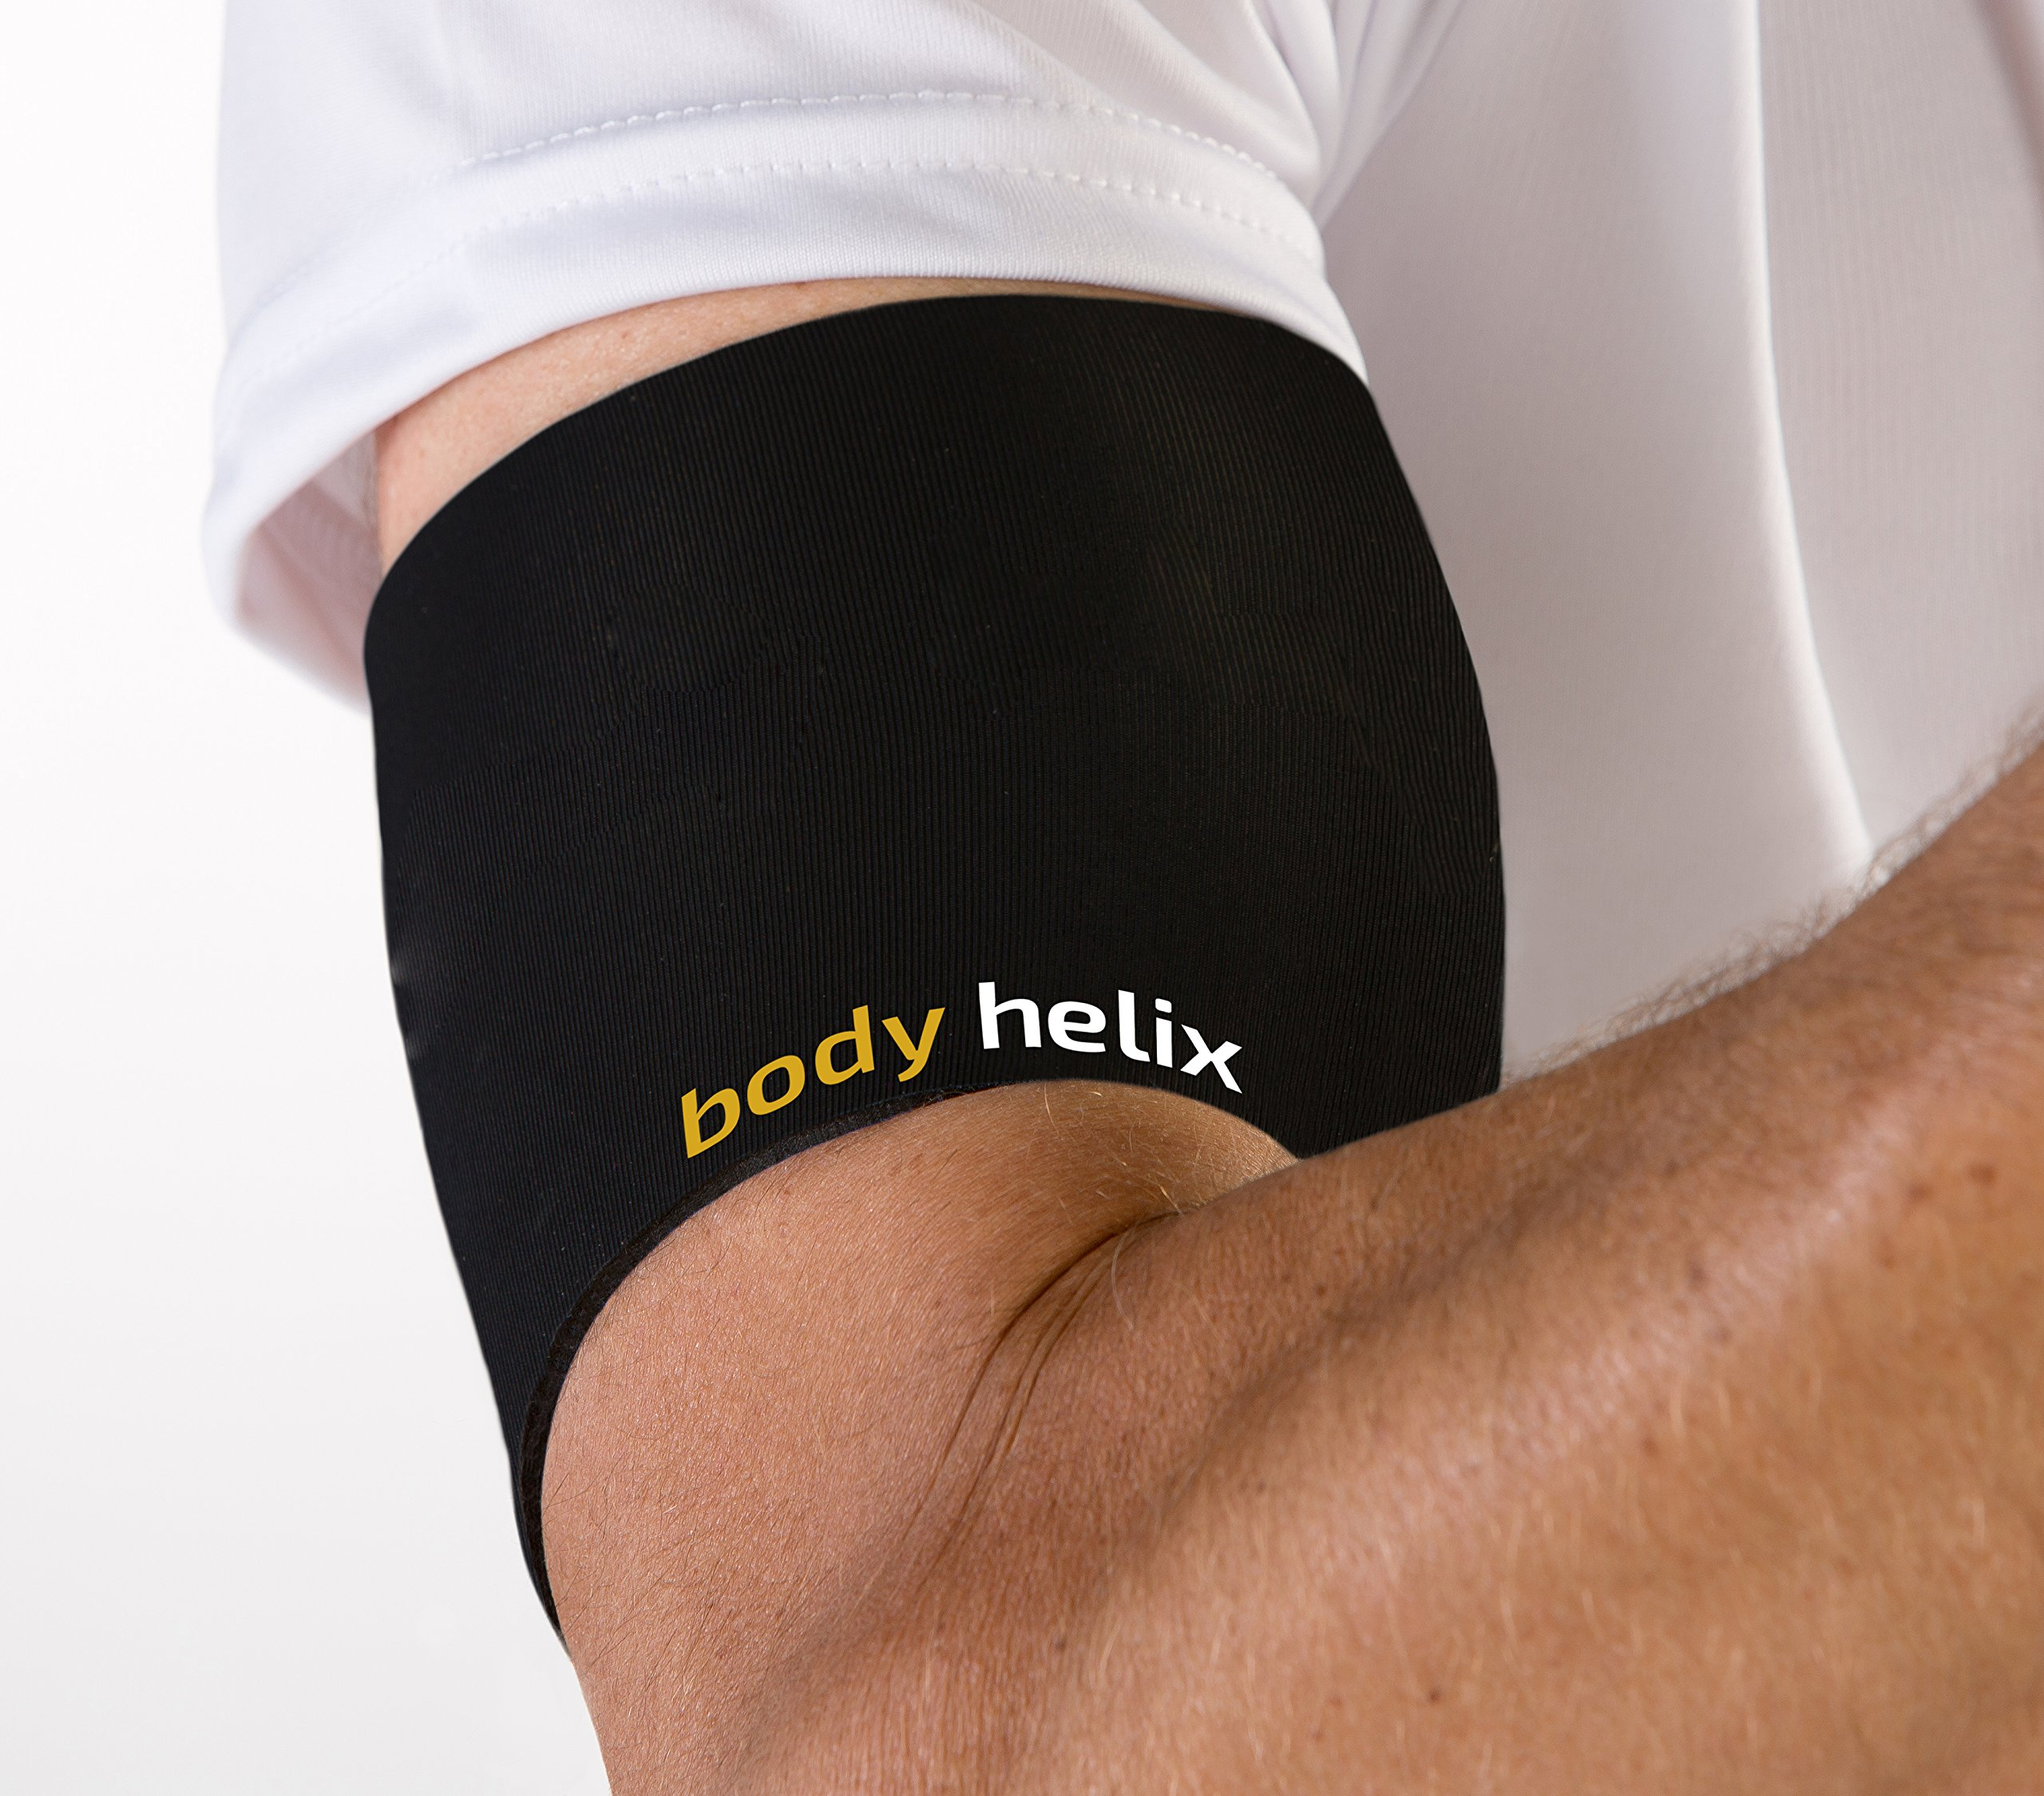 body helix Arm Compression Sleeve Wrap - Pain Relief for Bicep and Tricep Muscle Strains (Black, Small)